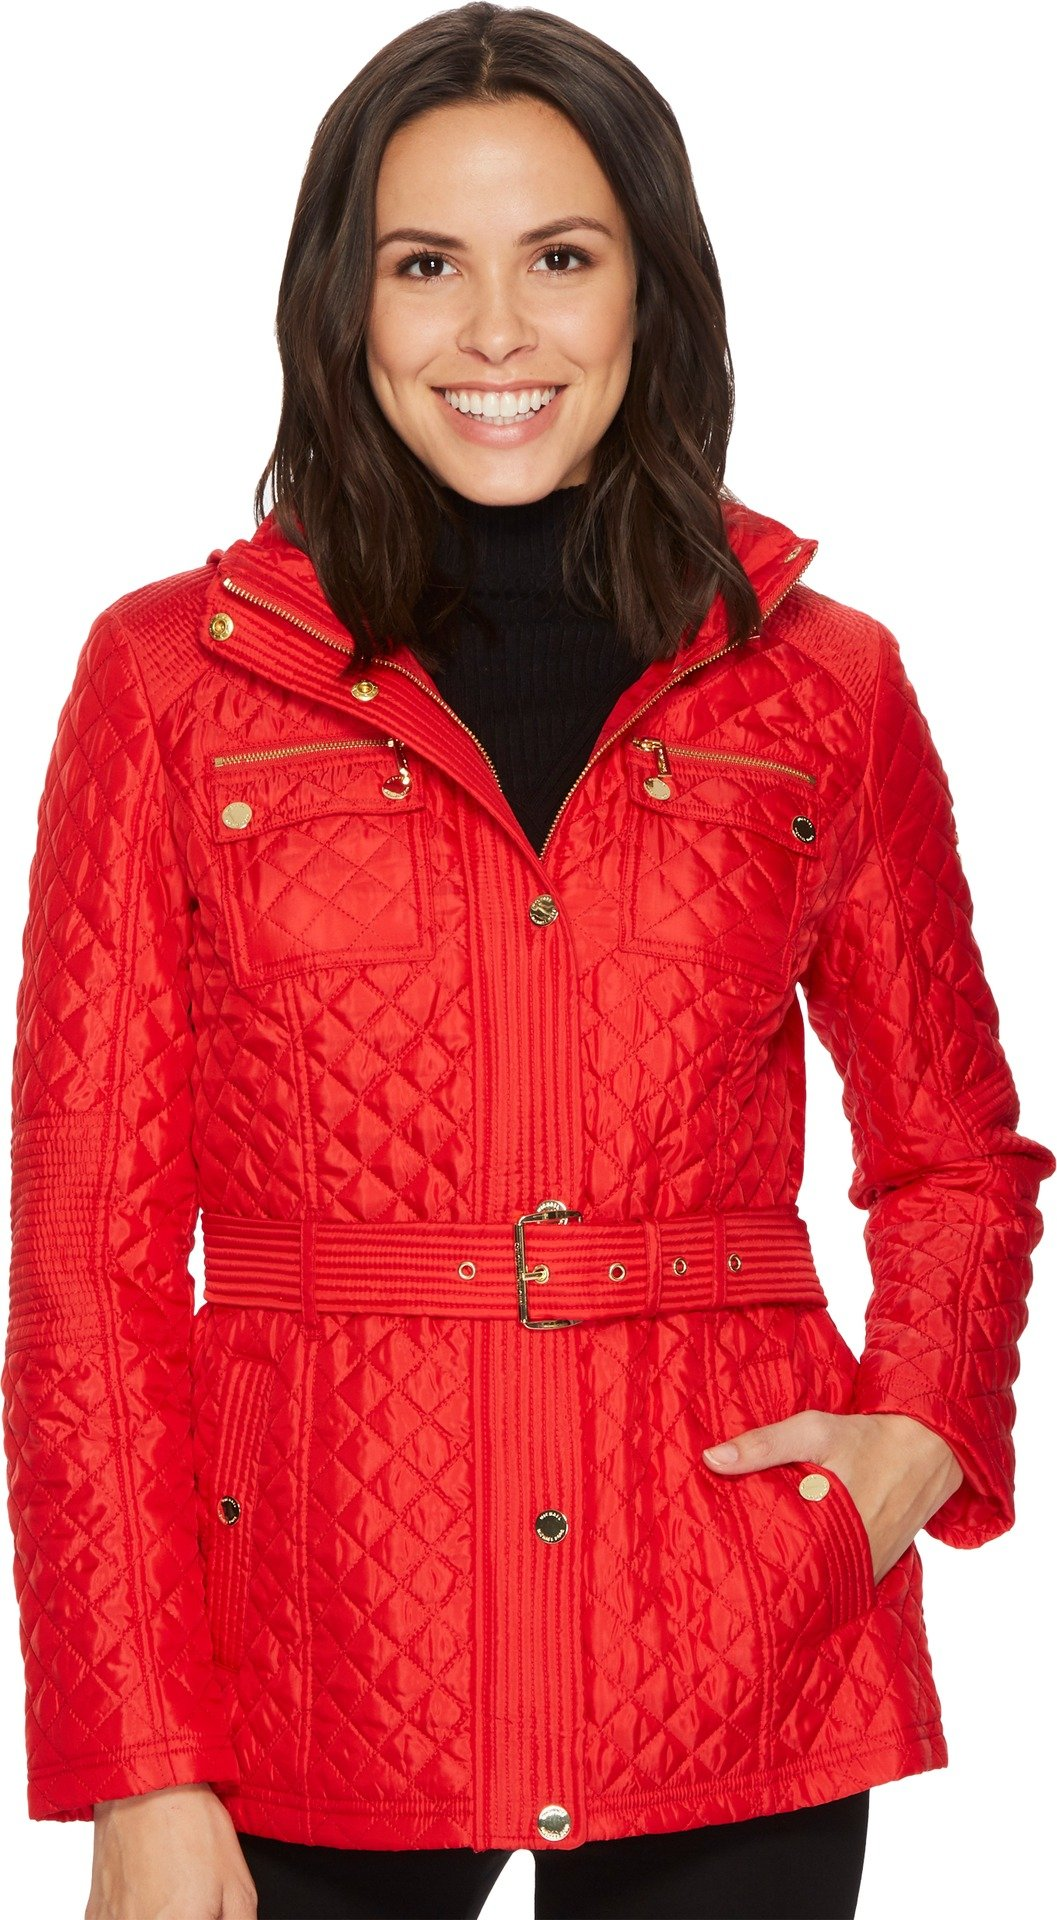 MICHAEL Michael Kors Womens Snap Front Belted Quilt M422715B74 Red SM One Size by MICHAEL Michael Kors